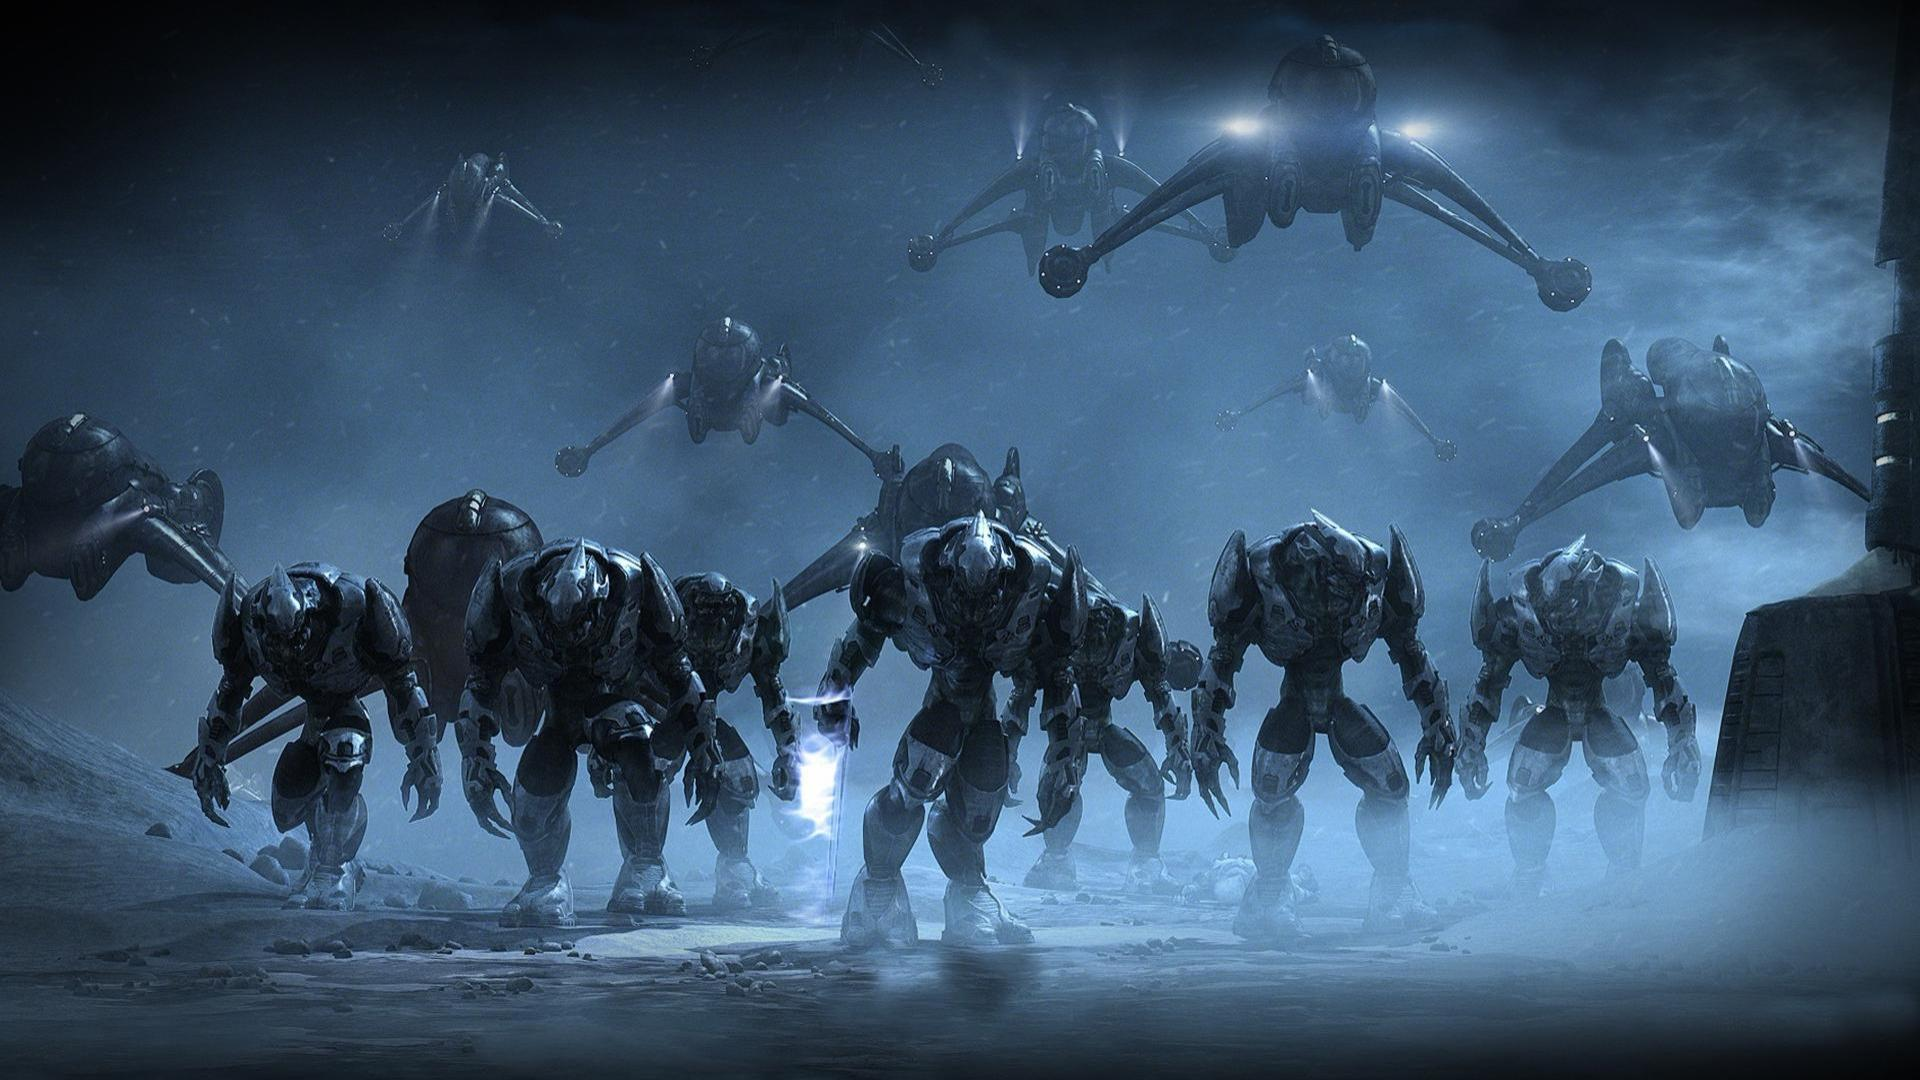 Halo 5 Wallpaper 1920x1080 1920x1080 halo wars wallpaper 1920x1080